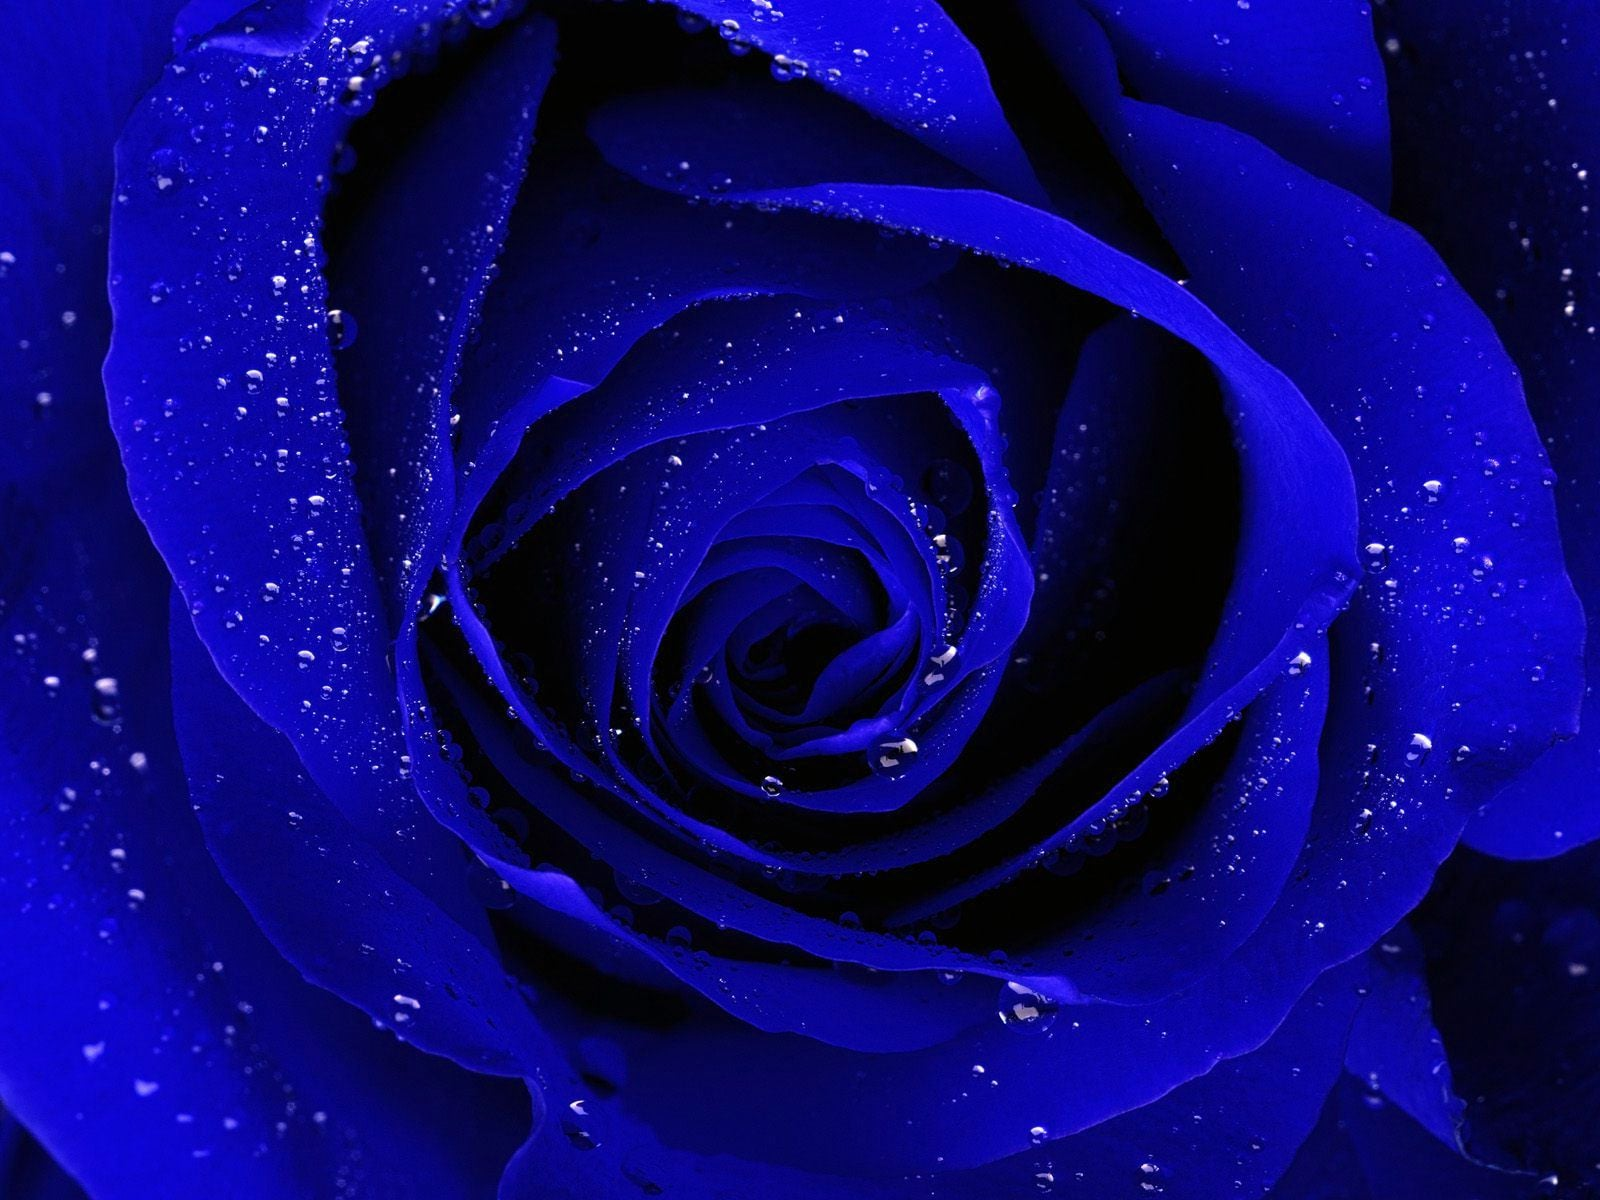 Blue Roses Background - WallpaperSafari